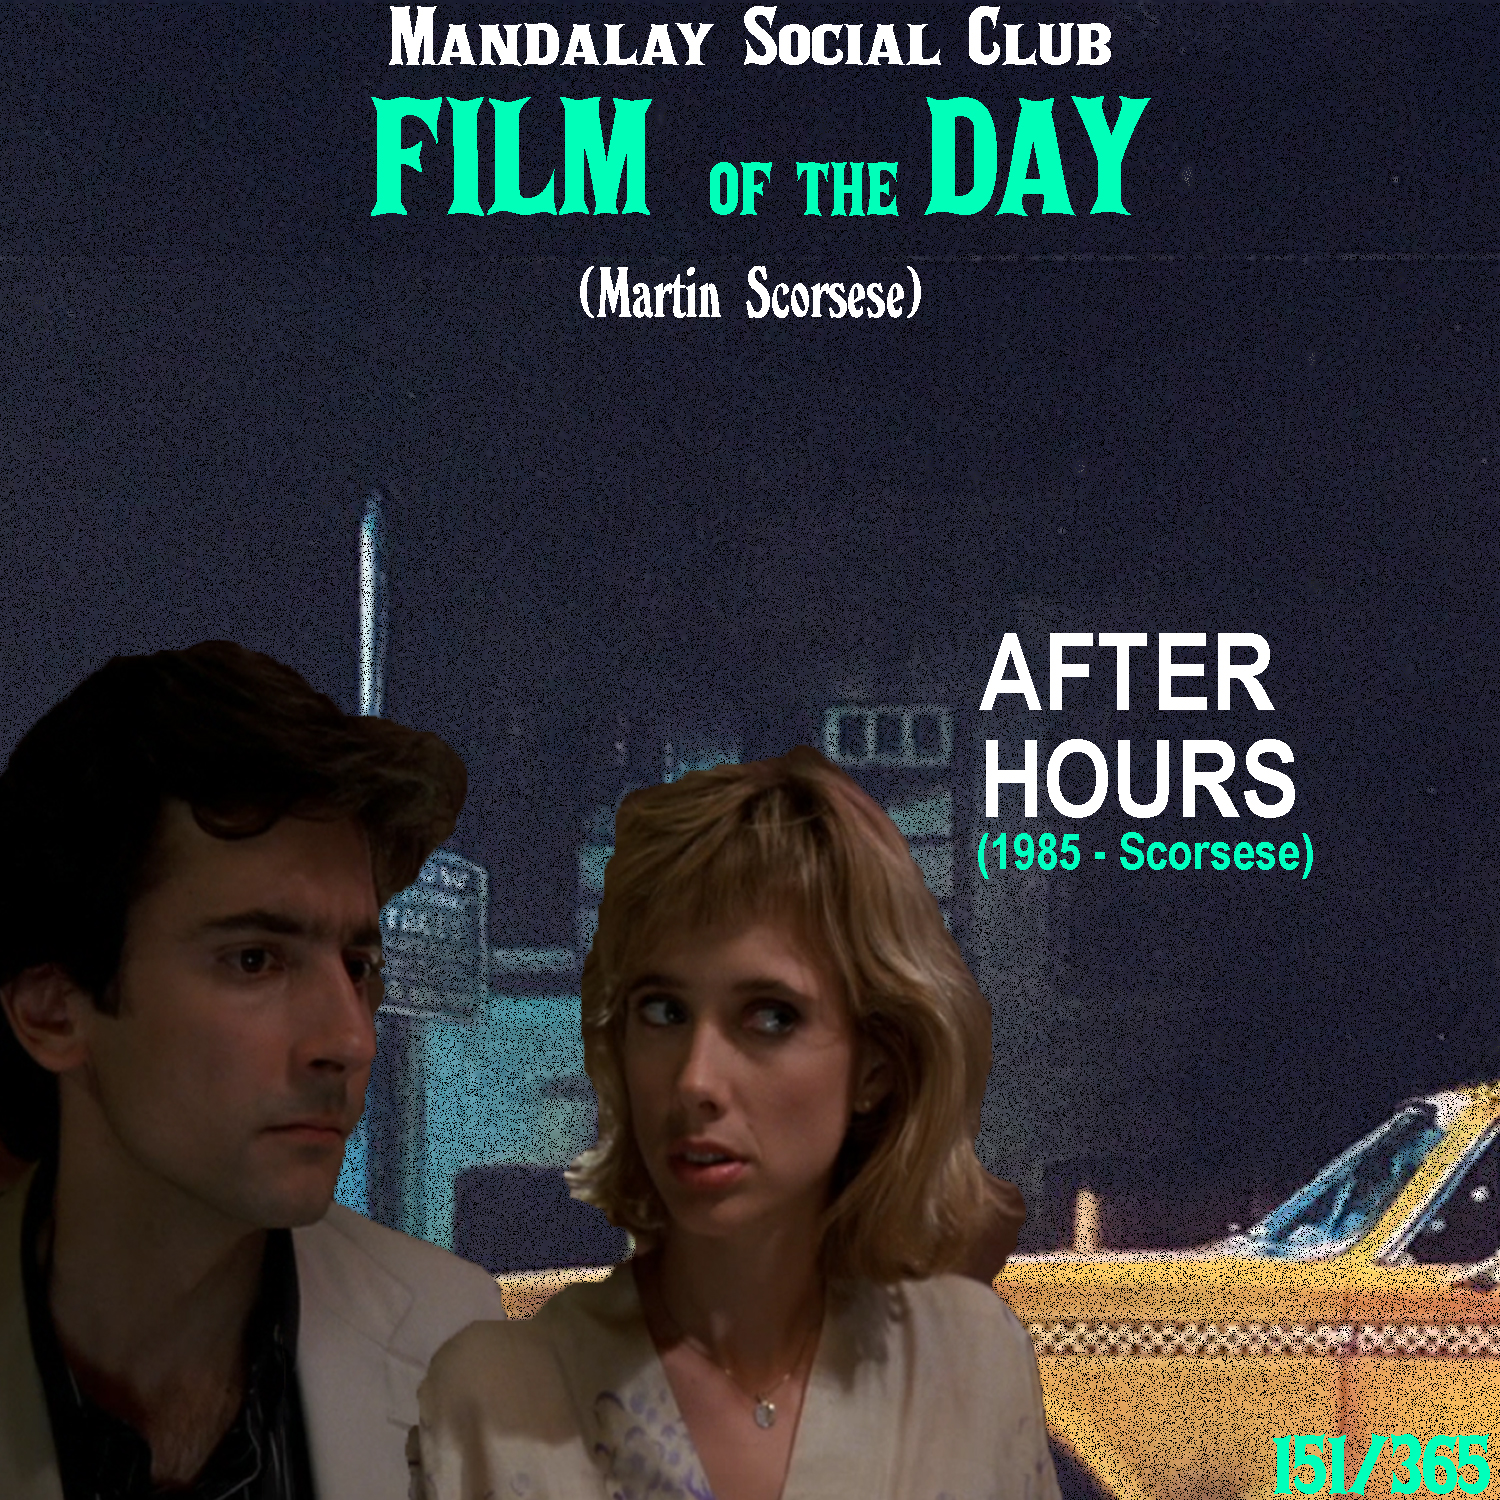 AFTER HOURS     (dir. Martin Scorsese)   Alright, I know I said  The King of Comedy  was overlooked, but  After Hours  might have it beat.  After Hours  isn't a film that gets looked at like  Taxi Driver, Raging Bull,  or  Goodfellas , but it has always been my personal favorite film of Scorsese's.  Griffin Dunne stars as Paul Hackett, an everyday guy who meets Marcy, an eccentric attractive young woman at a diner one night. After meeting Marcy, his entire evening takes on a surreal and consequential turn as Paul keeps finding himself getting in more and more trouble, the longer the night goes on.  Scorsese made  After Hours  in an effort to return to his roots when he wasn't able to get his passion project,  the Last Temptation of Christ , made.  After Hours  is fairly plotless and I've always compared it's structure to that of  Easy Rider . There is no real over-arcing premises, it's just one decision followed by another that dictates the next. Just like life.    5/5     WATCH: iTunes (RENT), Putlocker (FREE)